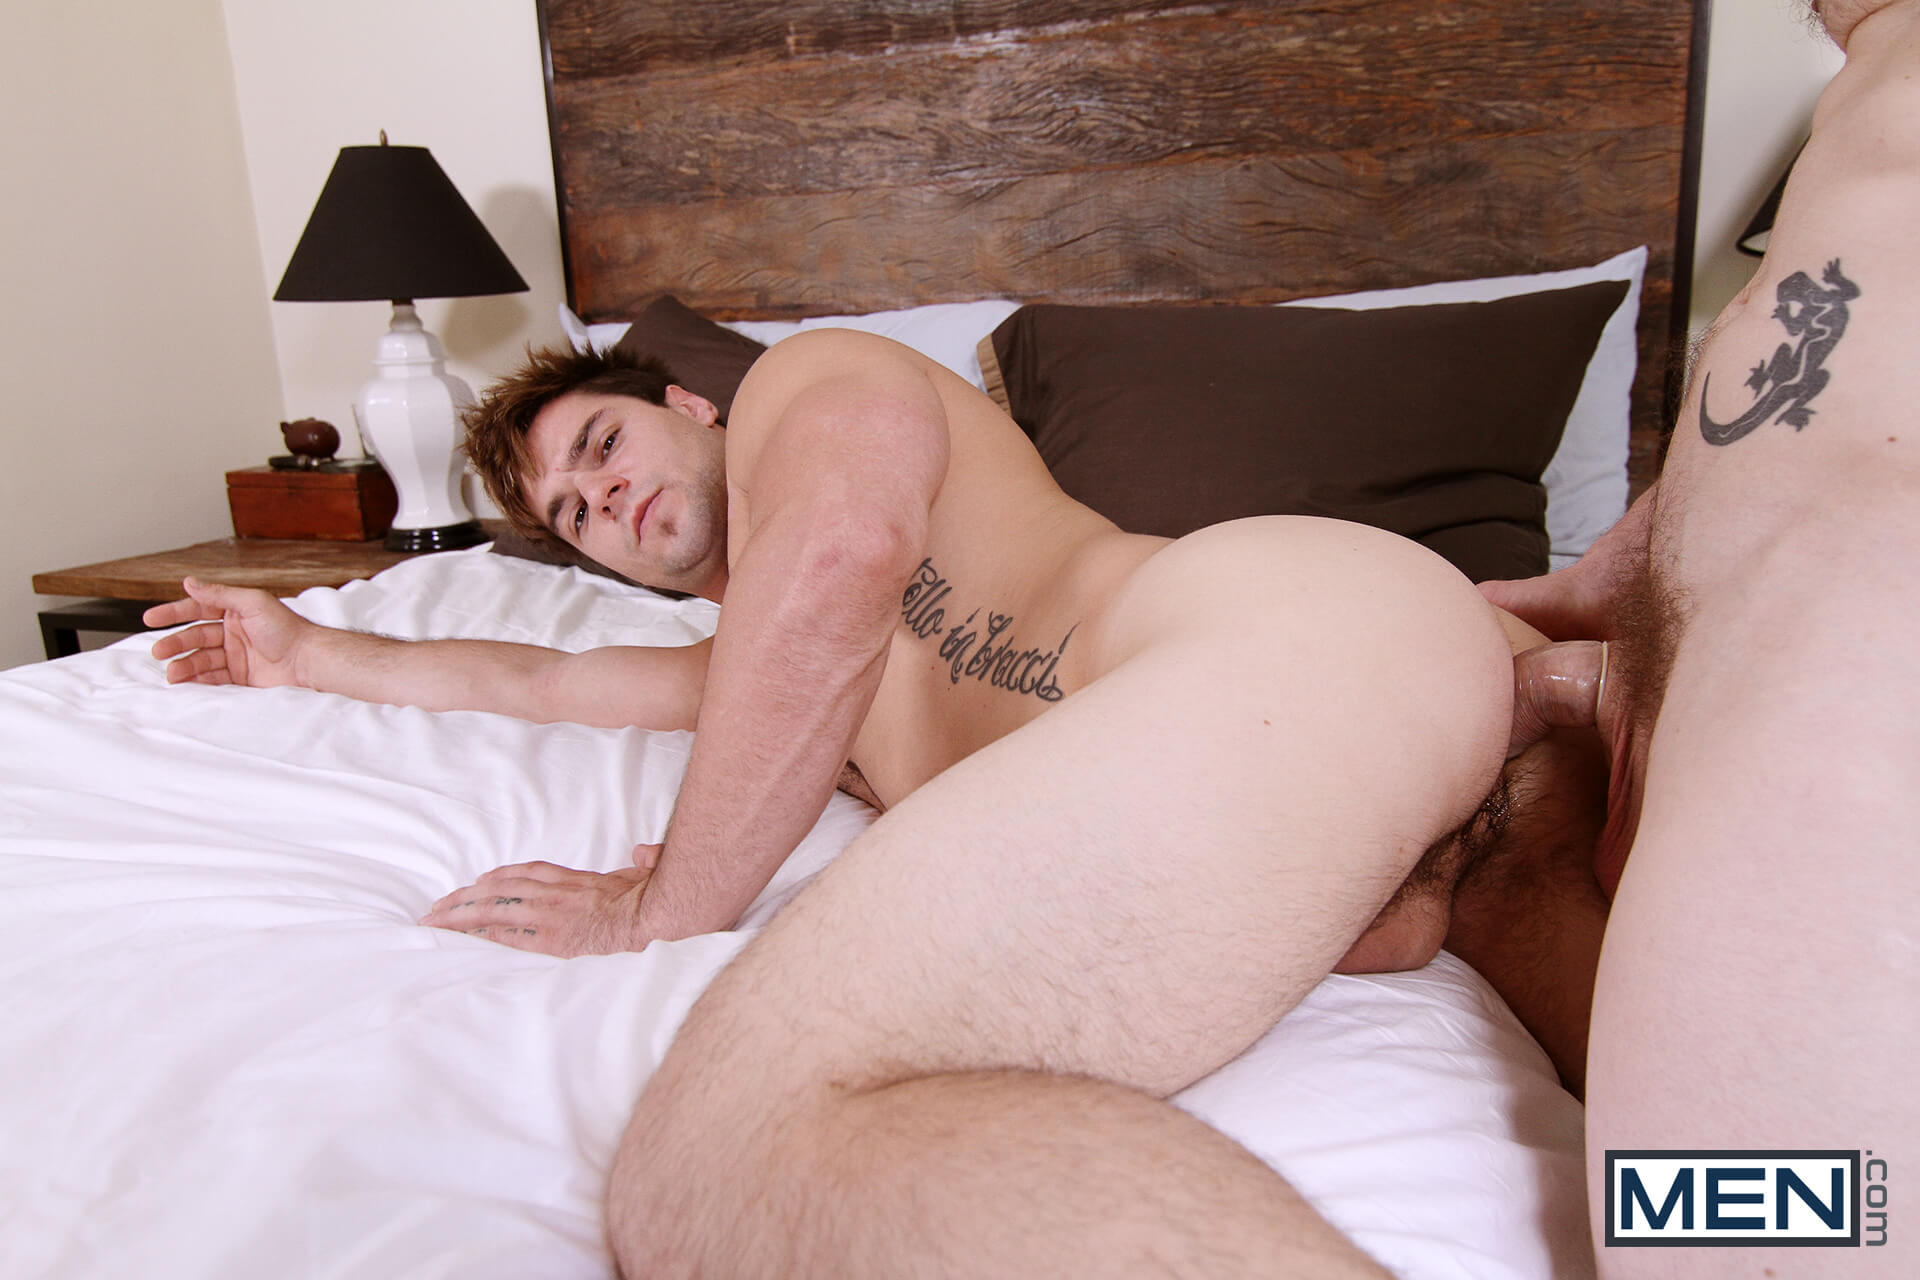 men str8 to gay the in laws part 2 aspen dennis west gay porn blog image 16